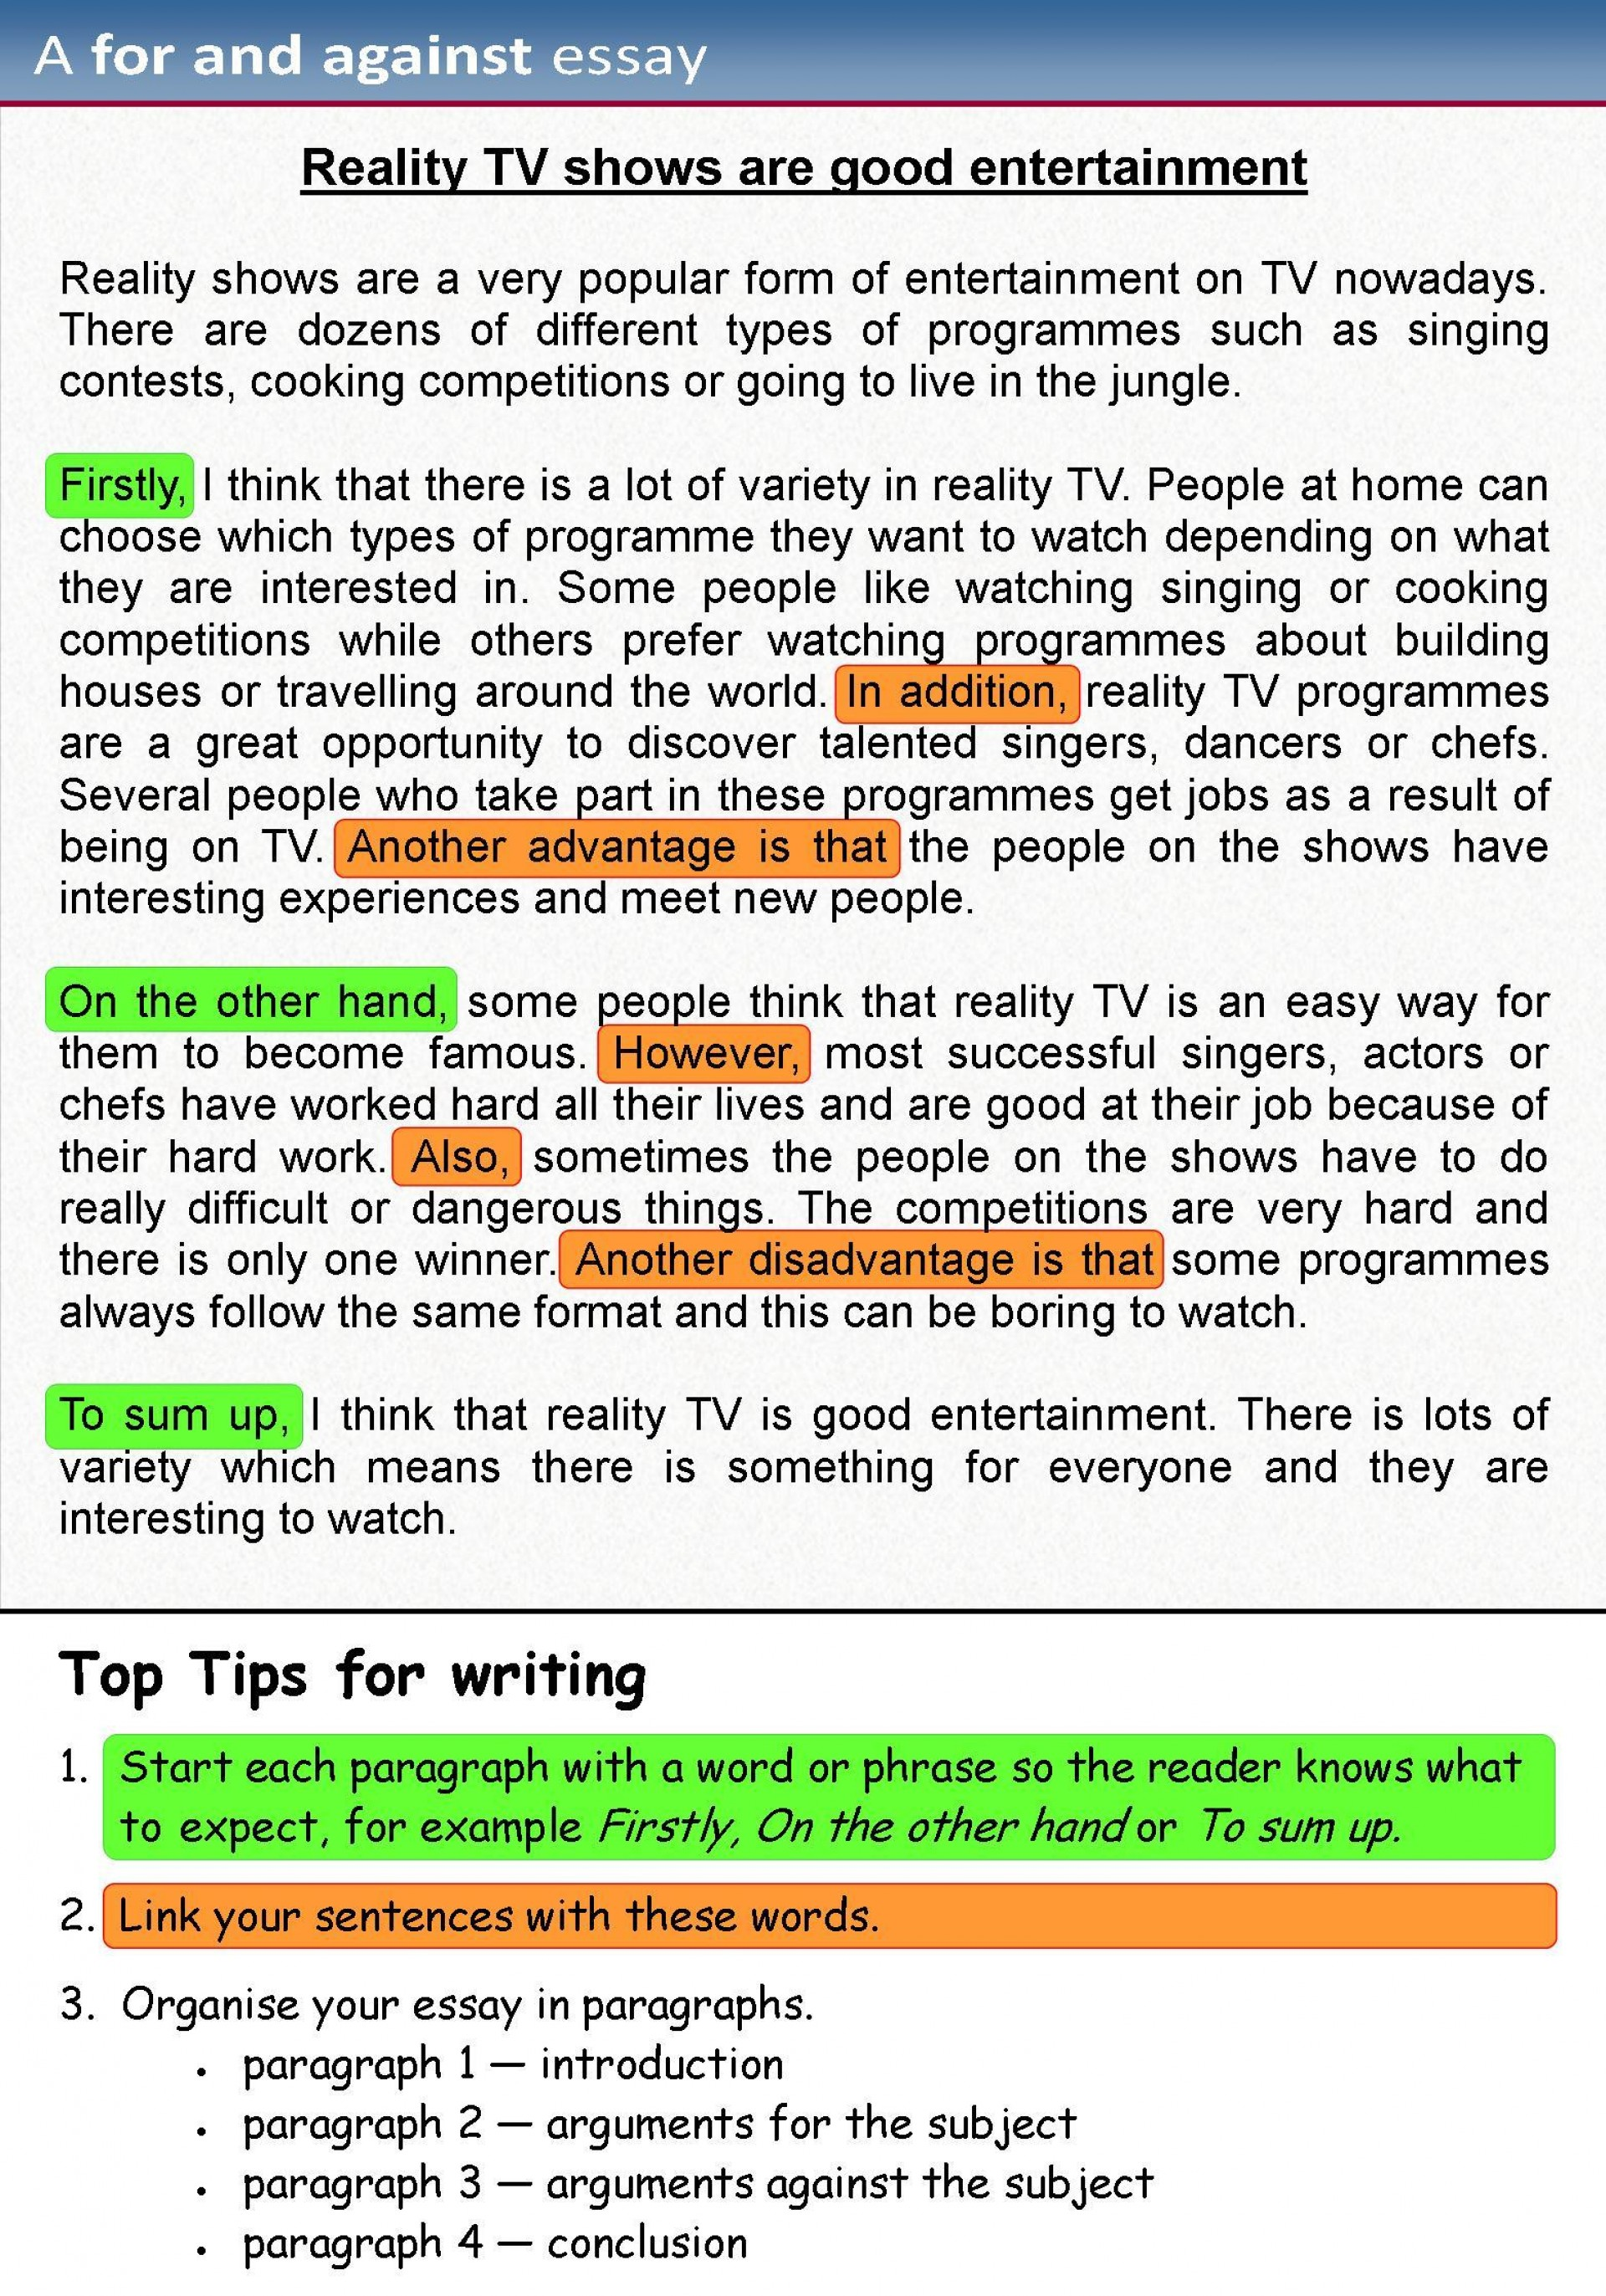 008 Fast Food Culture Essay Example About Customwriting What Is For Against Es Writing Tips Services Advantages Disadvantages University Cheap Service In Frightening Tamil India 1920